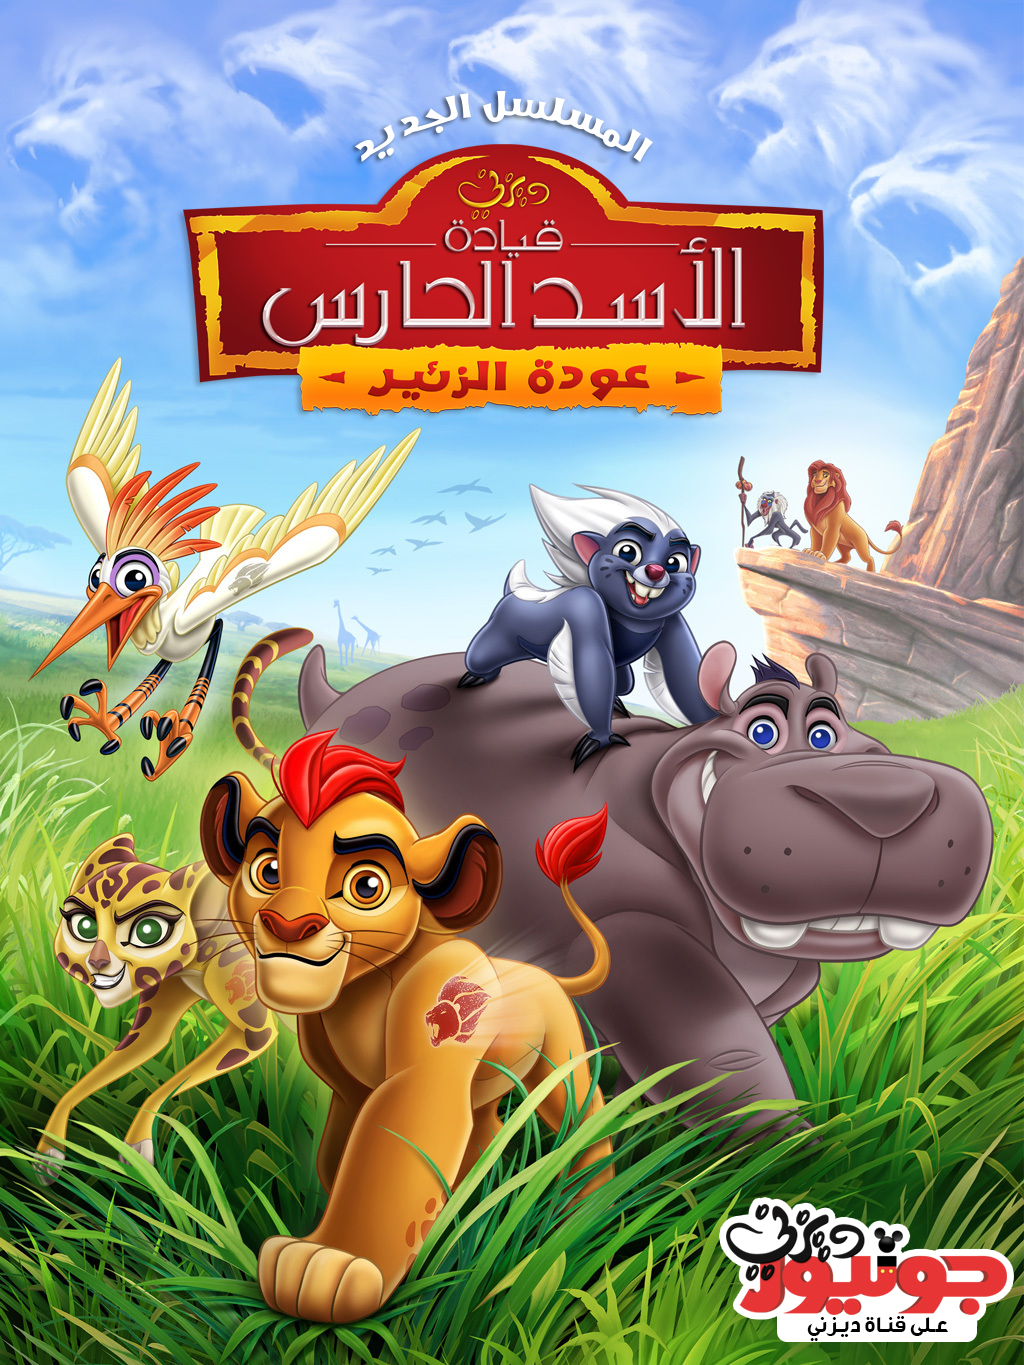 The Lion Guard Images The Lion Guard قيادة الأسد الحارس - Lion Guard Movie Poster , HD Wallpaper & Backgrounds